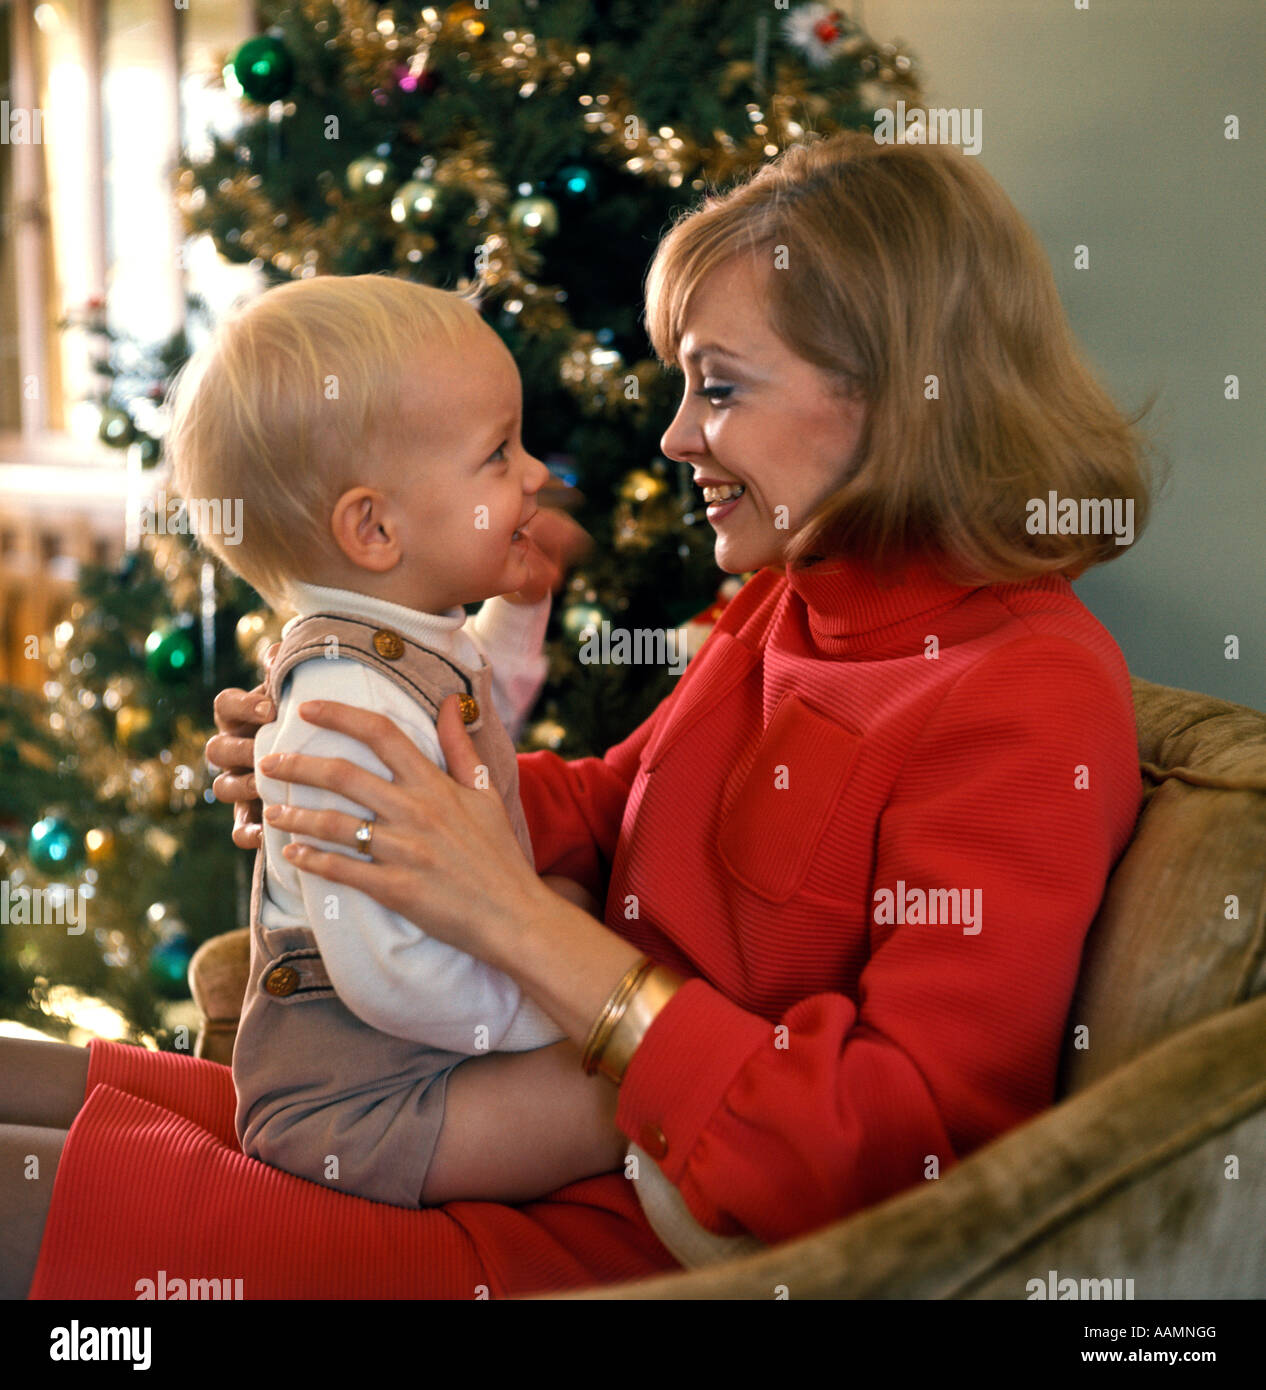 1970 1970s WOMAN MOTHER SMILING BABY LAP PARENT PARENTING CHRISTMAS TREE HOLIDAY BABY FIRST FAMILY FAMILIES RETRO - Stock Image